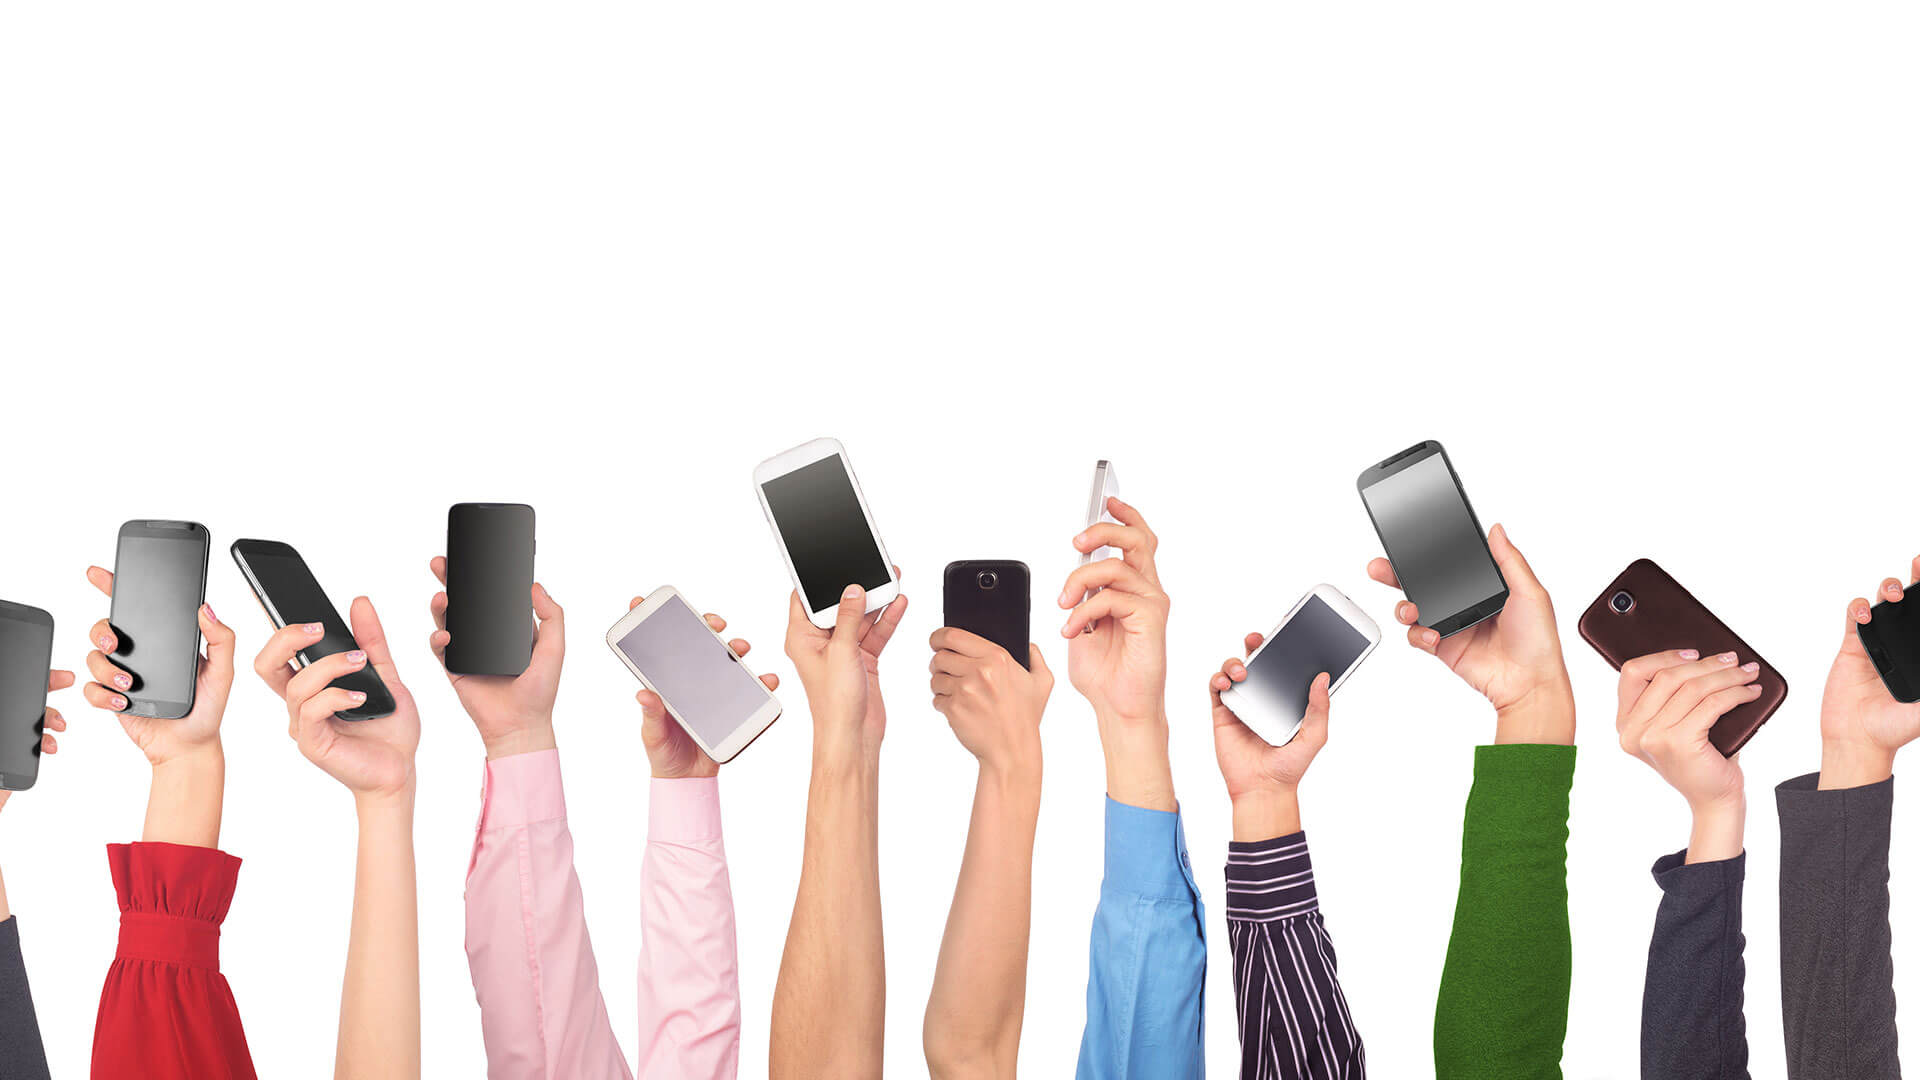 A group of individuals each holding up a smartphone (photo shows arms only).